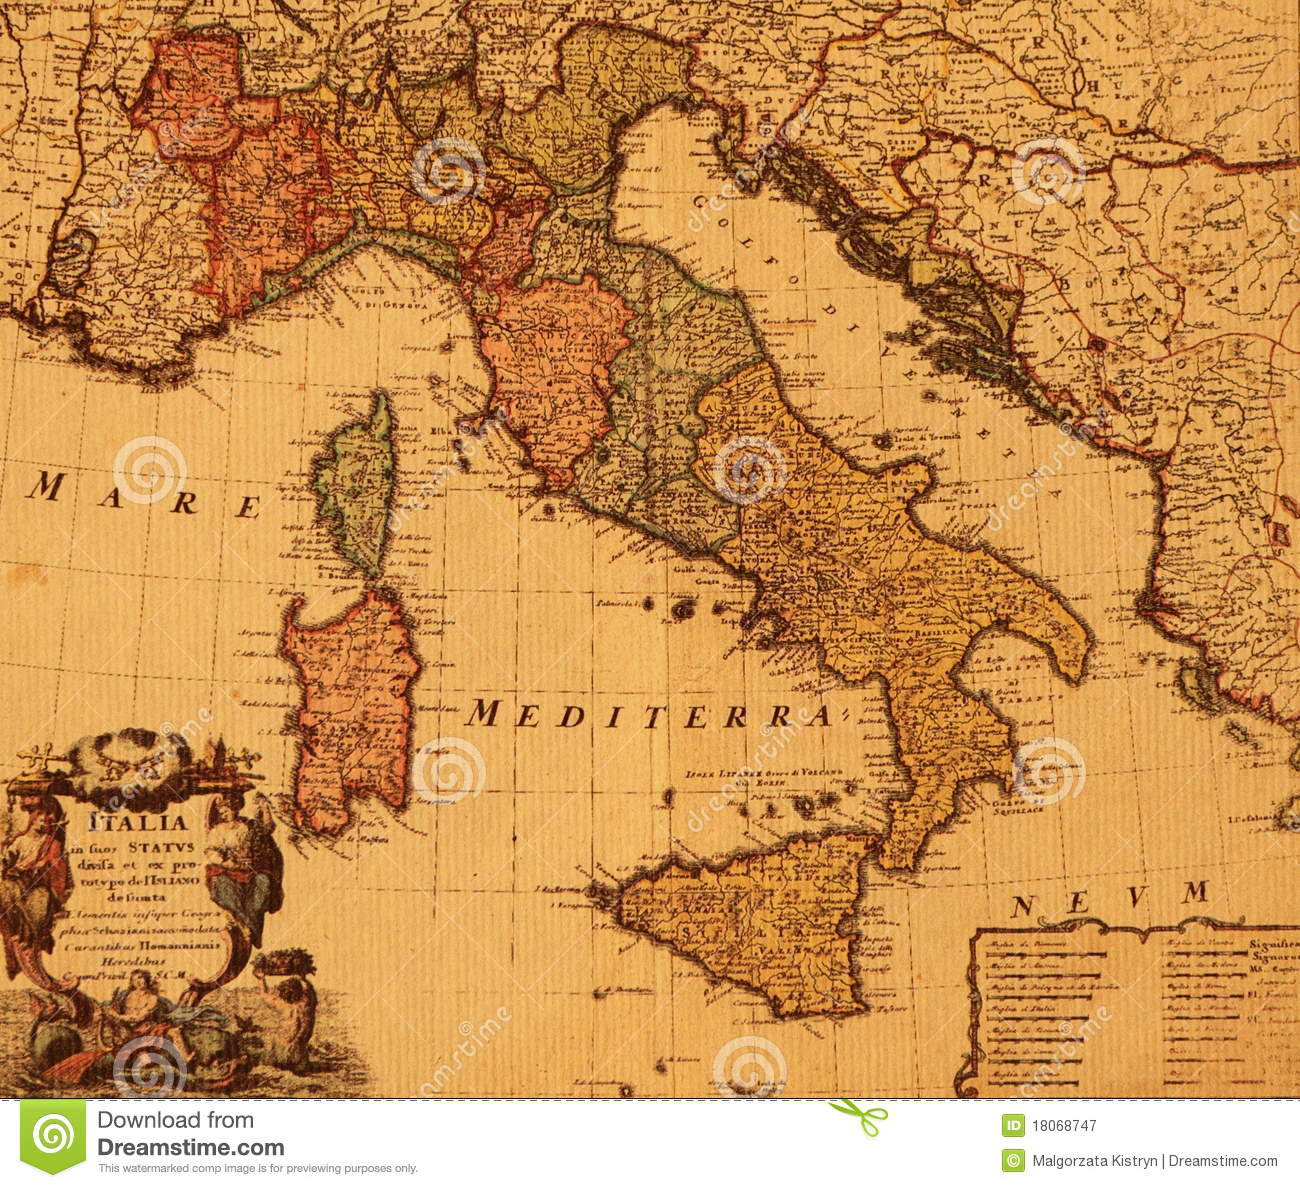 antique map of italy stock image image of atlas cartography 18068747. Black Bedroom Furniture Sets. Home Design Ideas